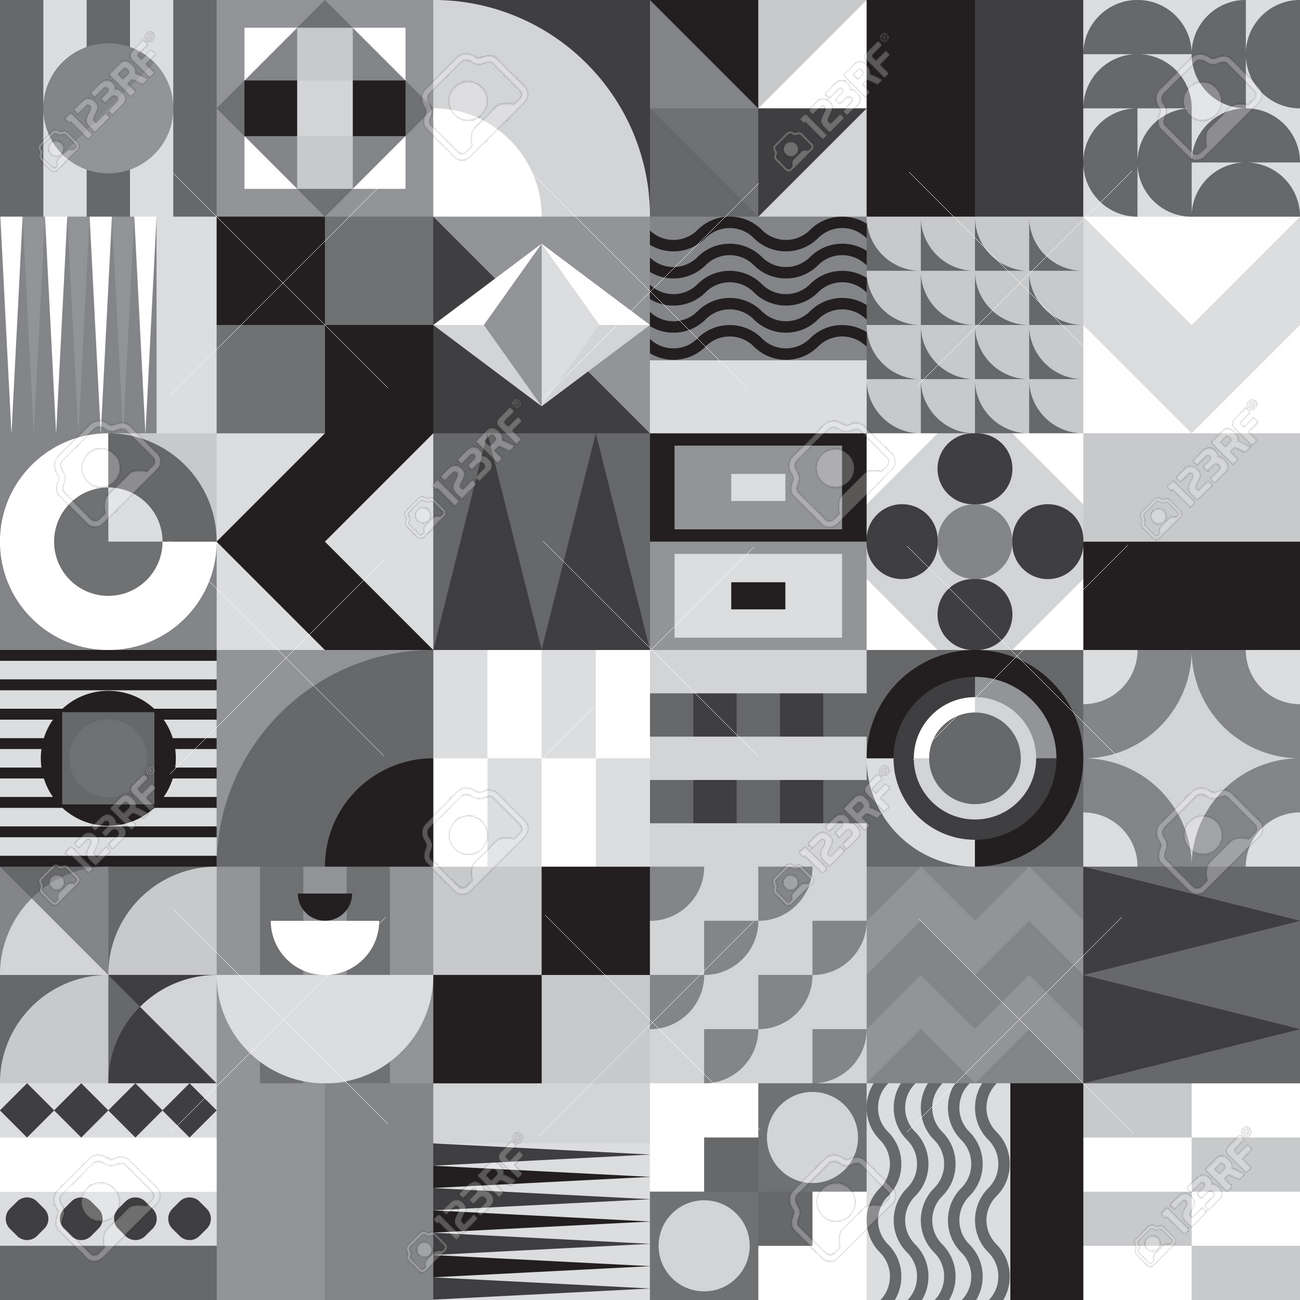 Contemporary geometric mosaic seamless pattern with a vibrant color scheme, repeat background with rich and modern shapes, surface pattern design for web and print - 66990958